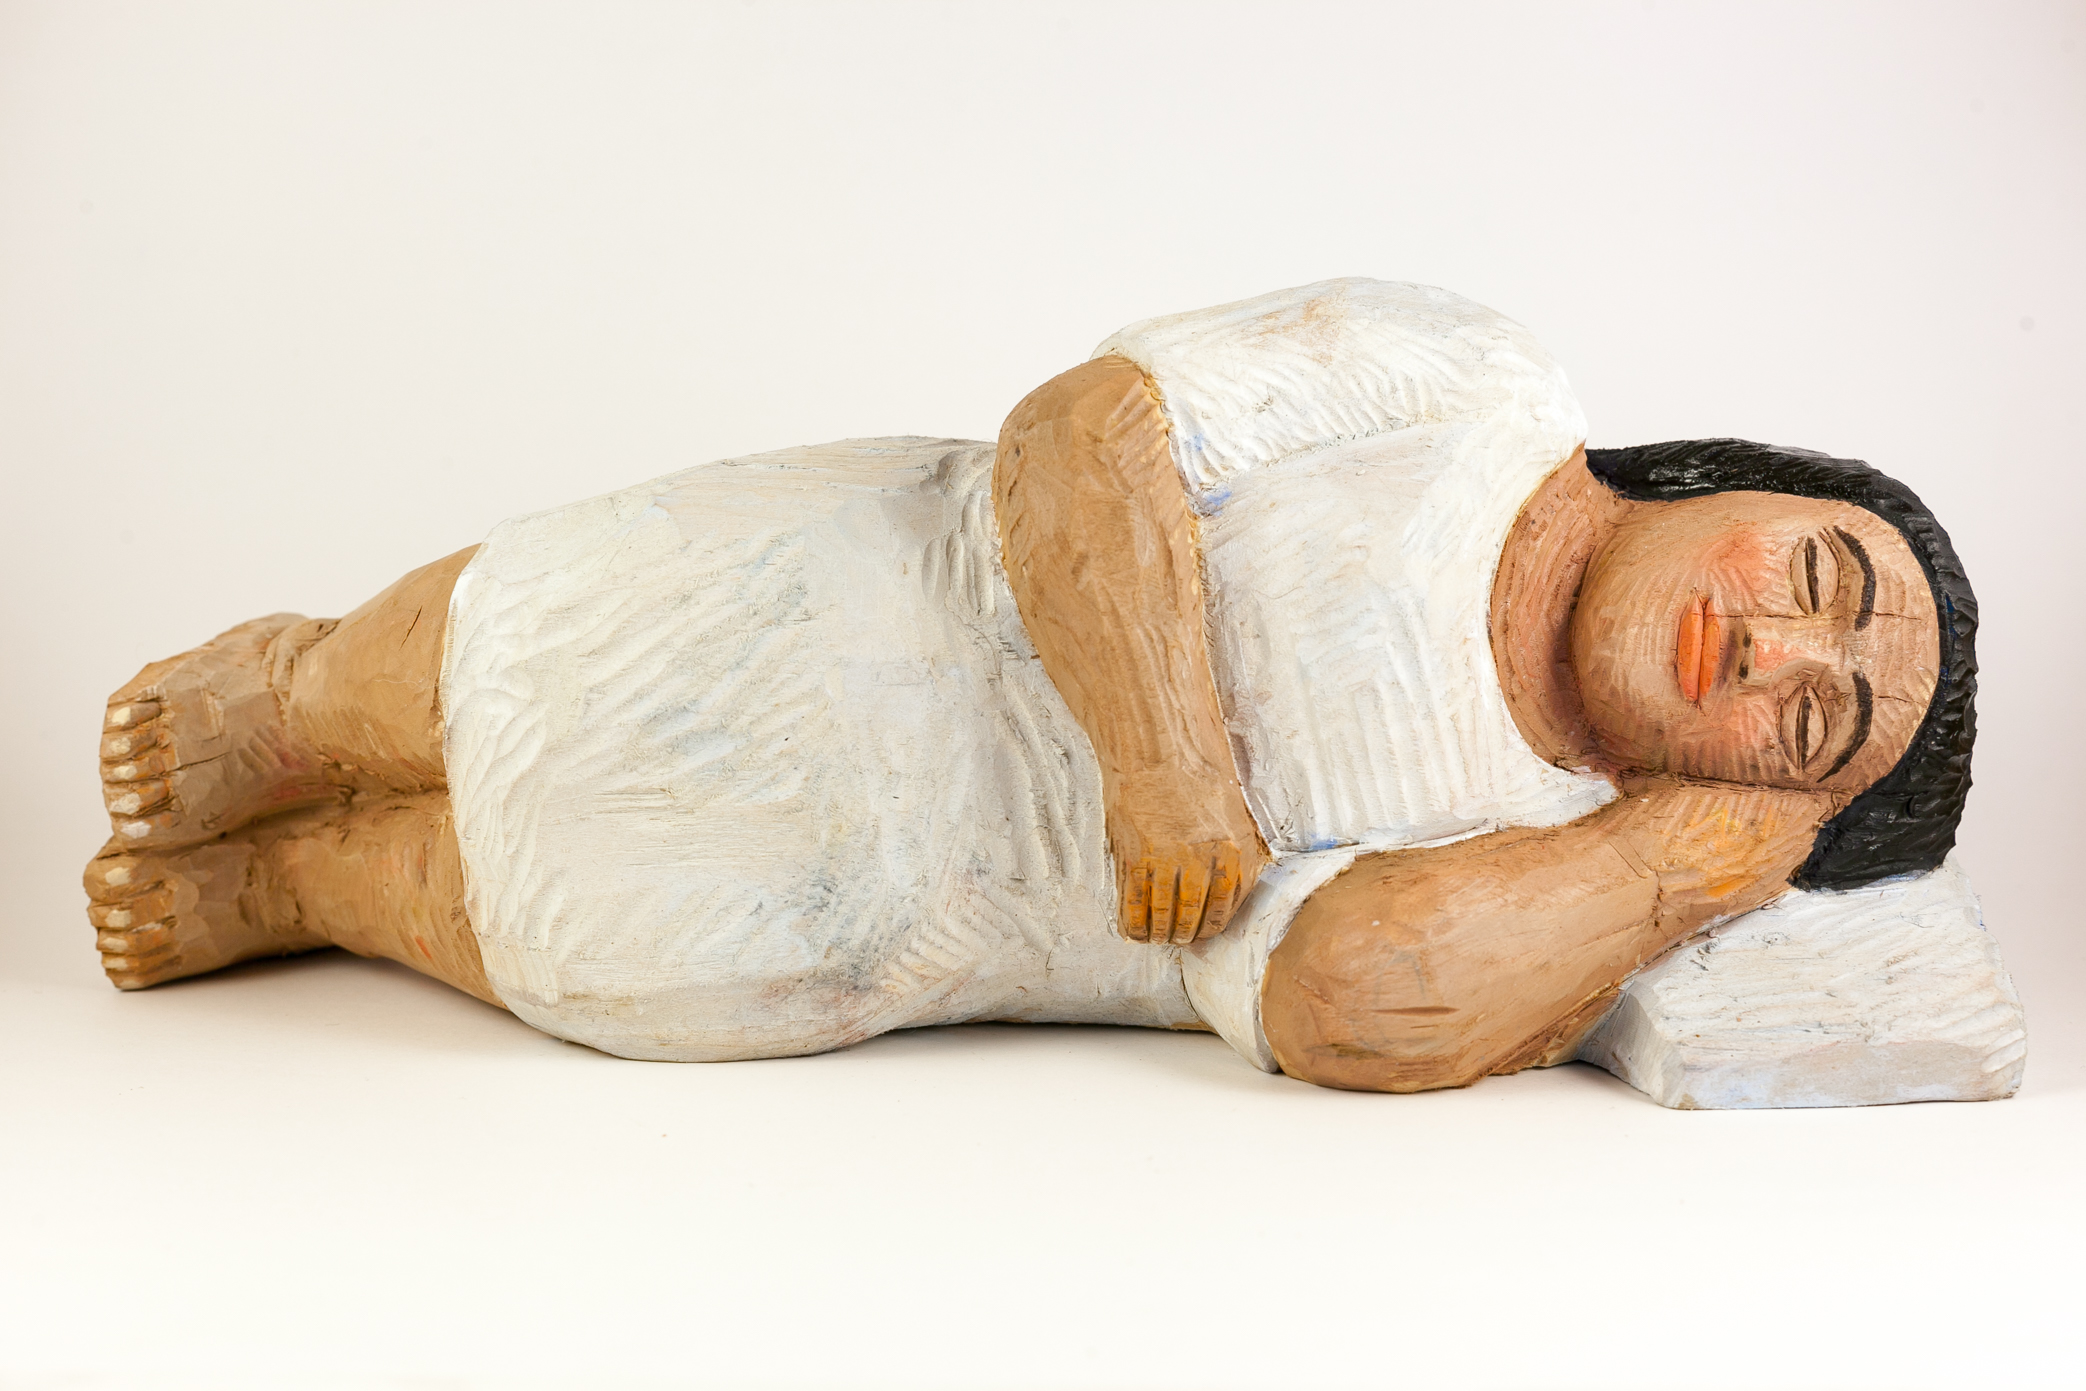 Sleeping Woman, 2015 – Collection of Dr. Christopher and Mrs. Rachel Brewer